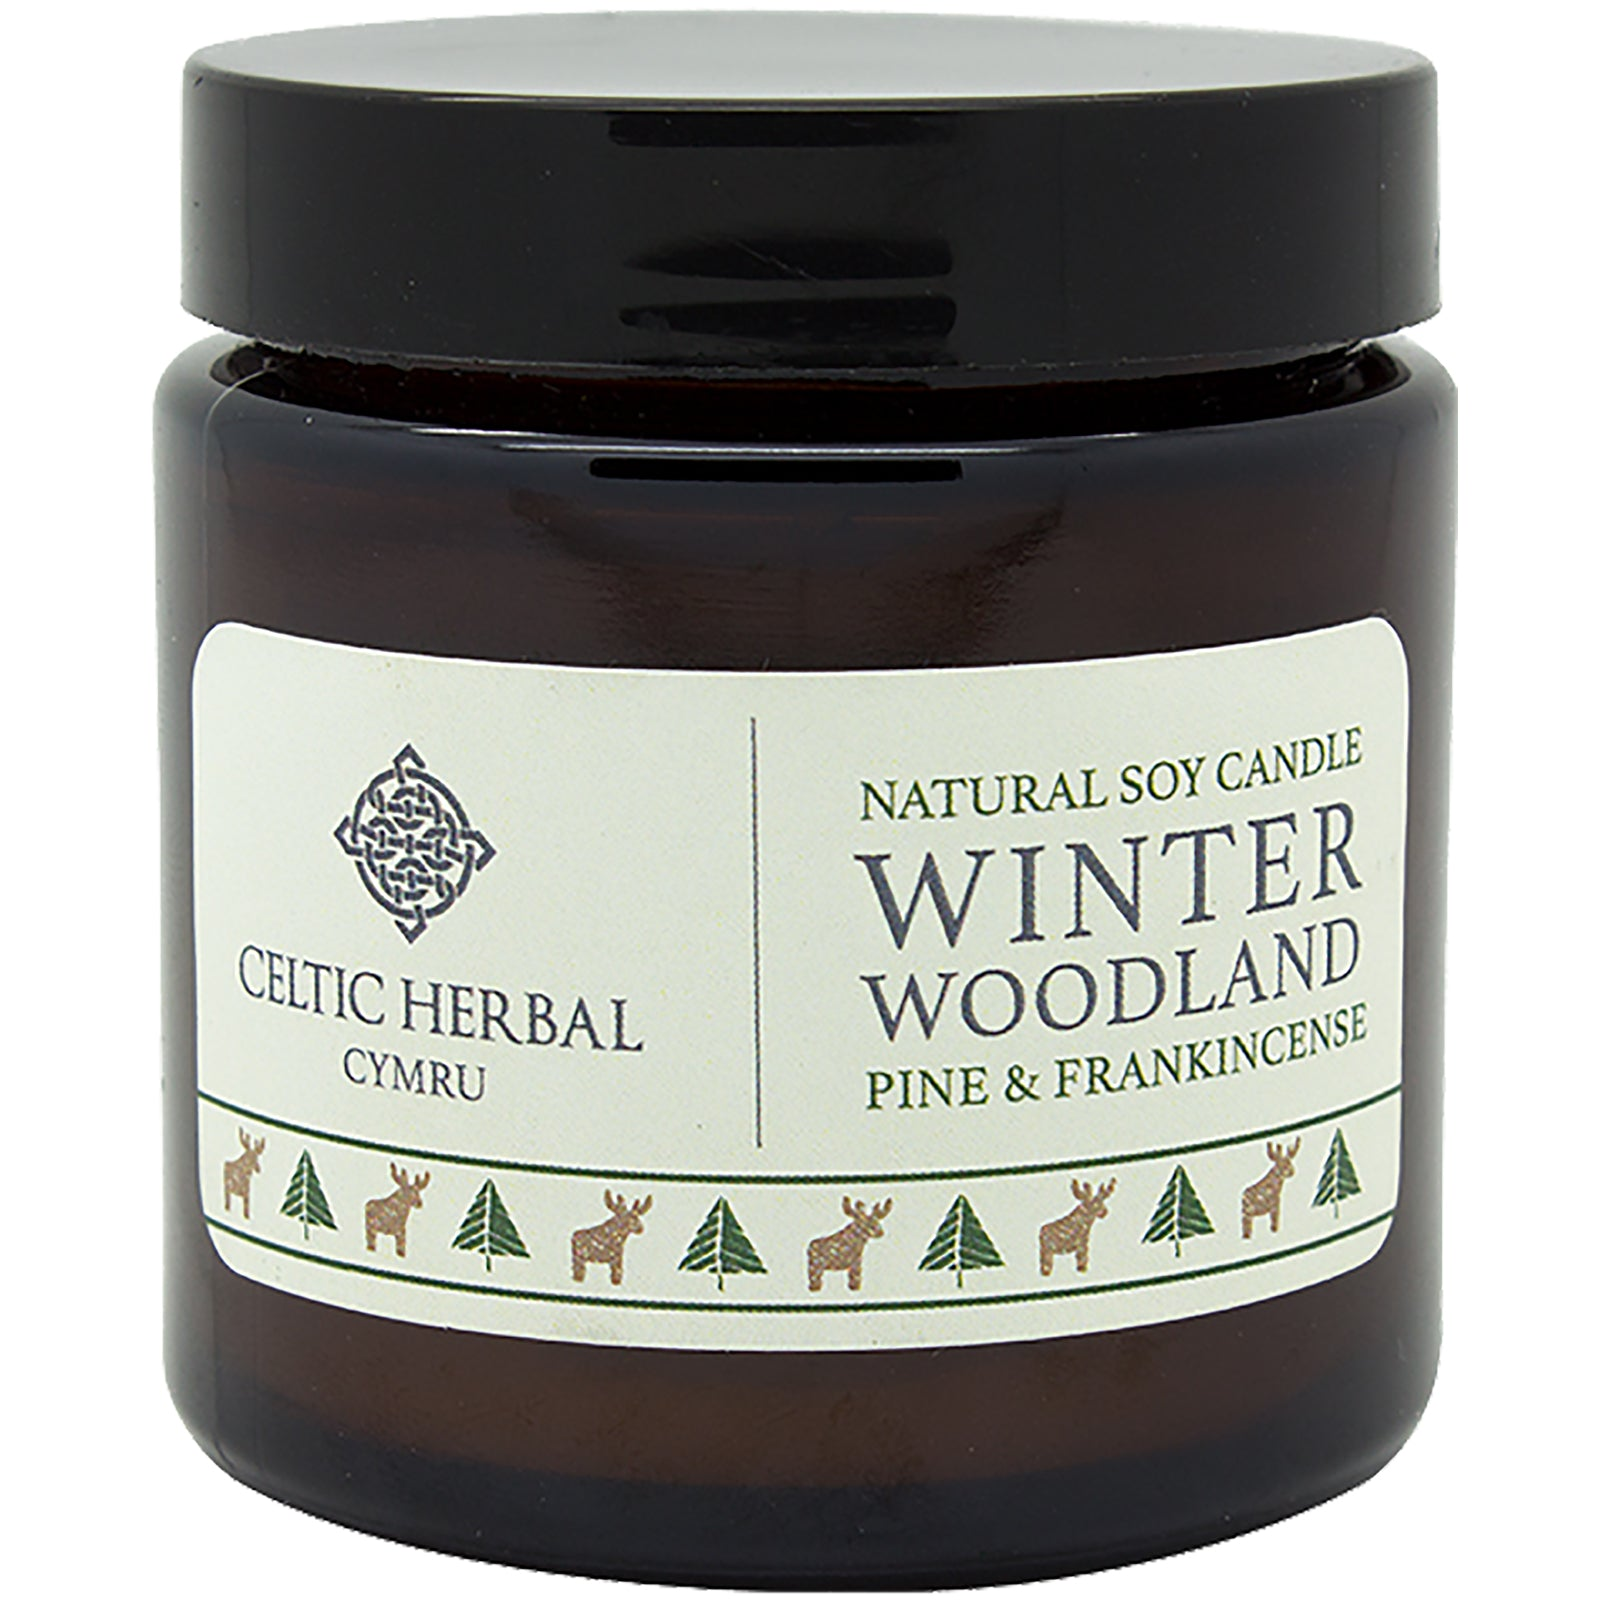 Winter Woodland Soy Candle with Pine & Frankincense